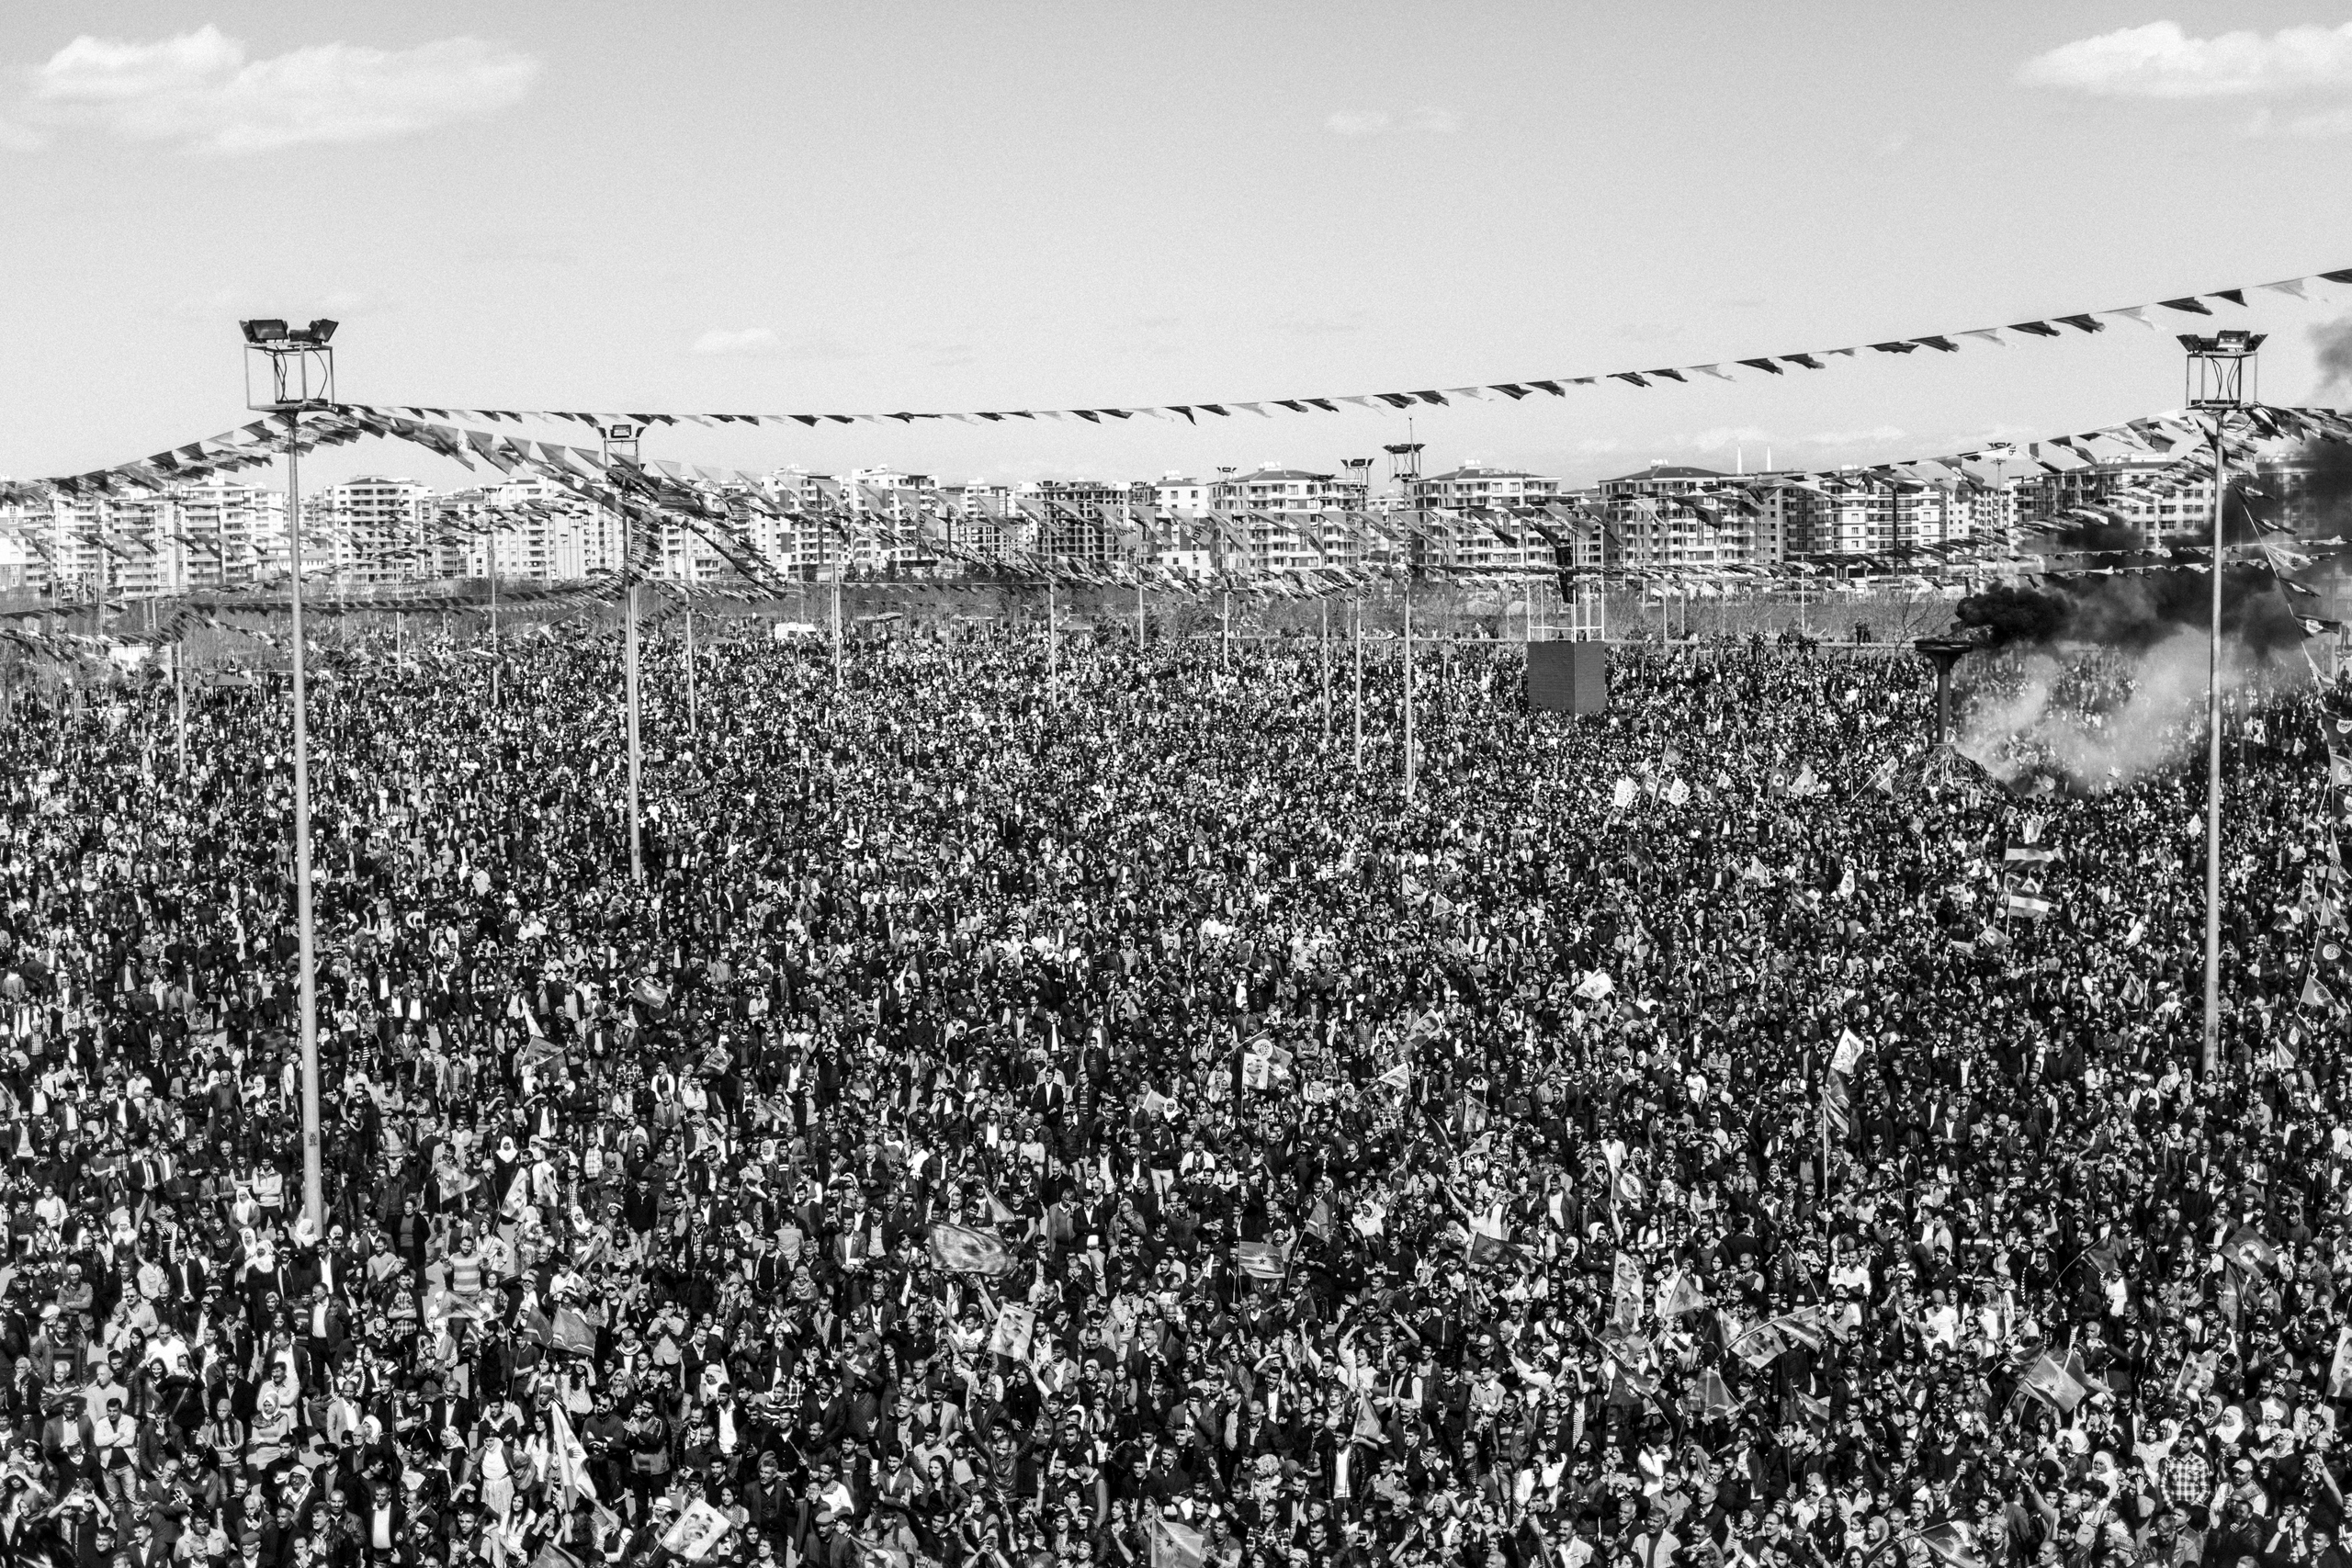 Thousands of Kurds celebrate the Newroz Spring festival in Diyarbakir, southern Turkey, March 2016, after months of fighting between security forces and Kurdish separatists.  Nowruz, the Farsi-language word for 'New Year' is an ancient Persian festival, celebrated on the first day of Spring in the Central Asian Republics, Iraq, Turkey, Afghanistan and Iran.